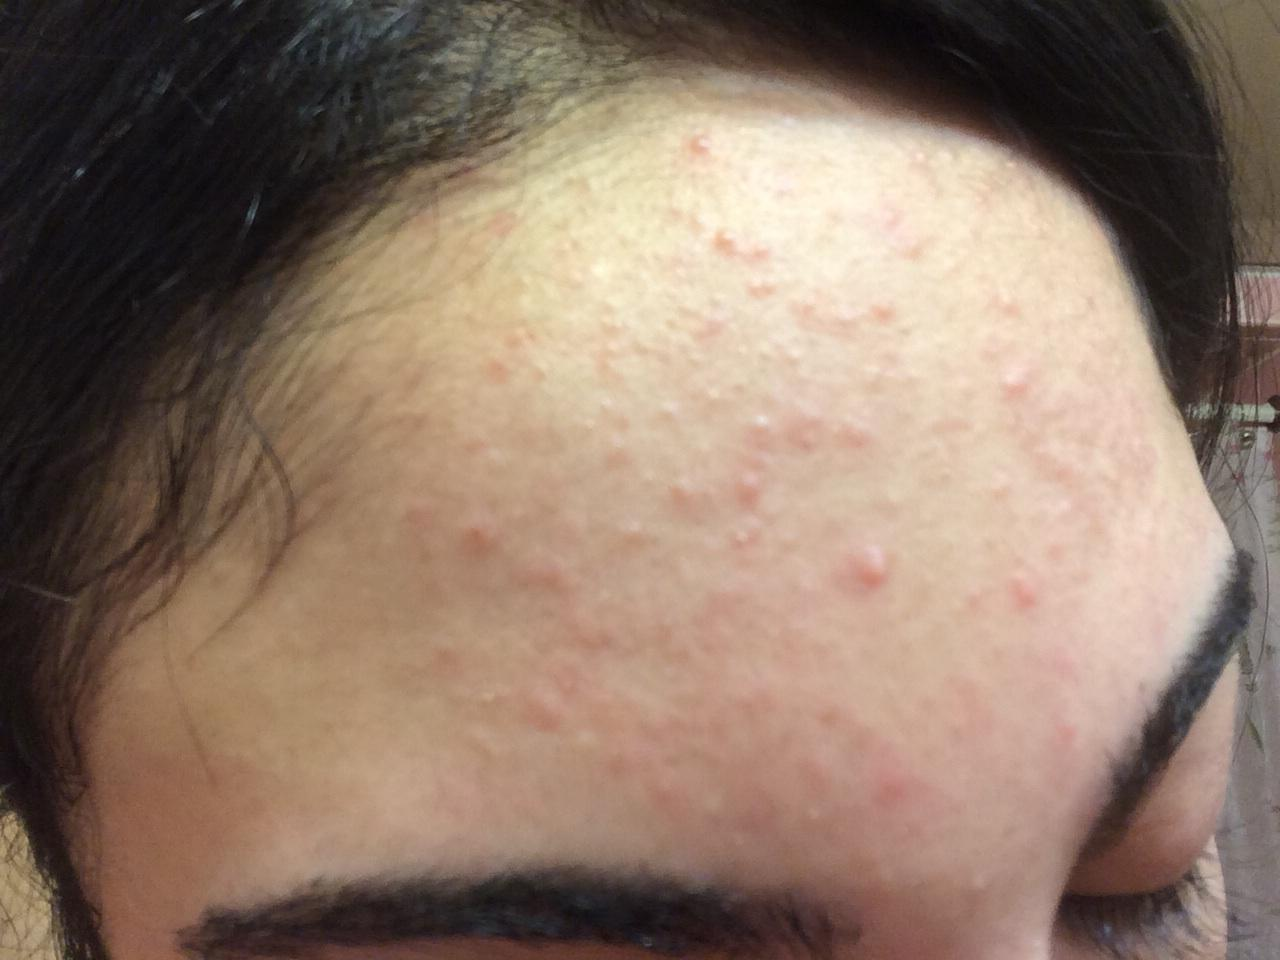 what are these small slightly red bumps on my forehead ...